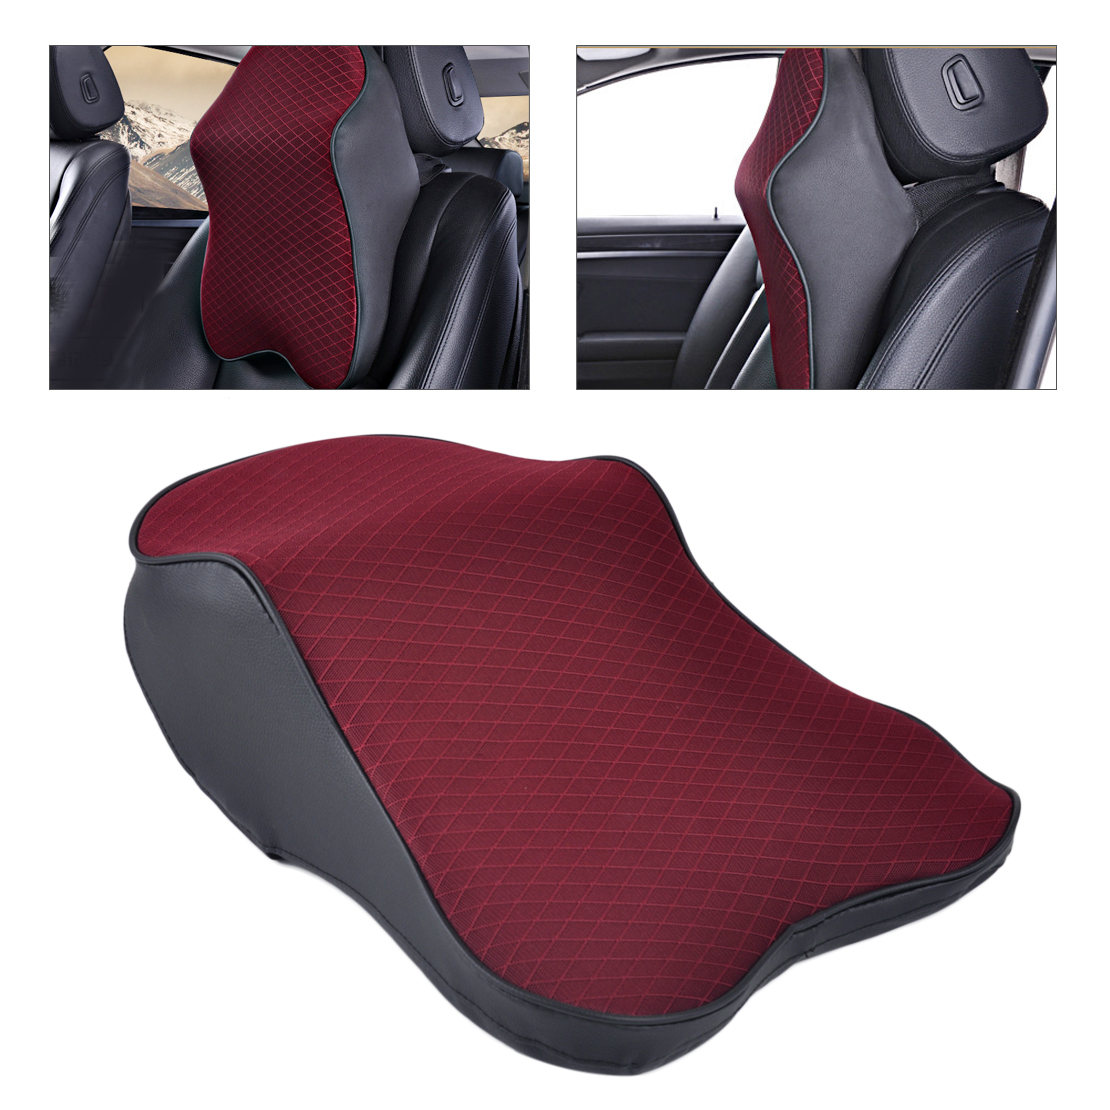 Dwcx car seat soft headrest memory foam pad pillow head neck rest support cushion travel for